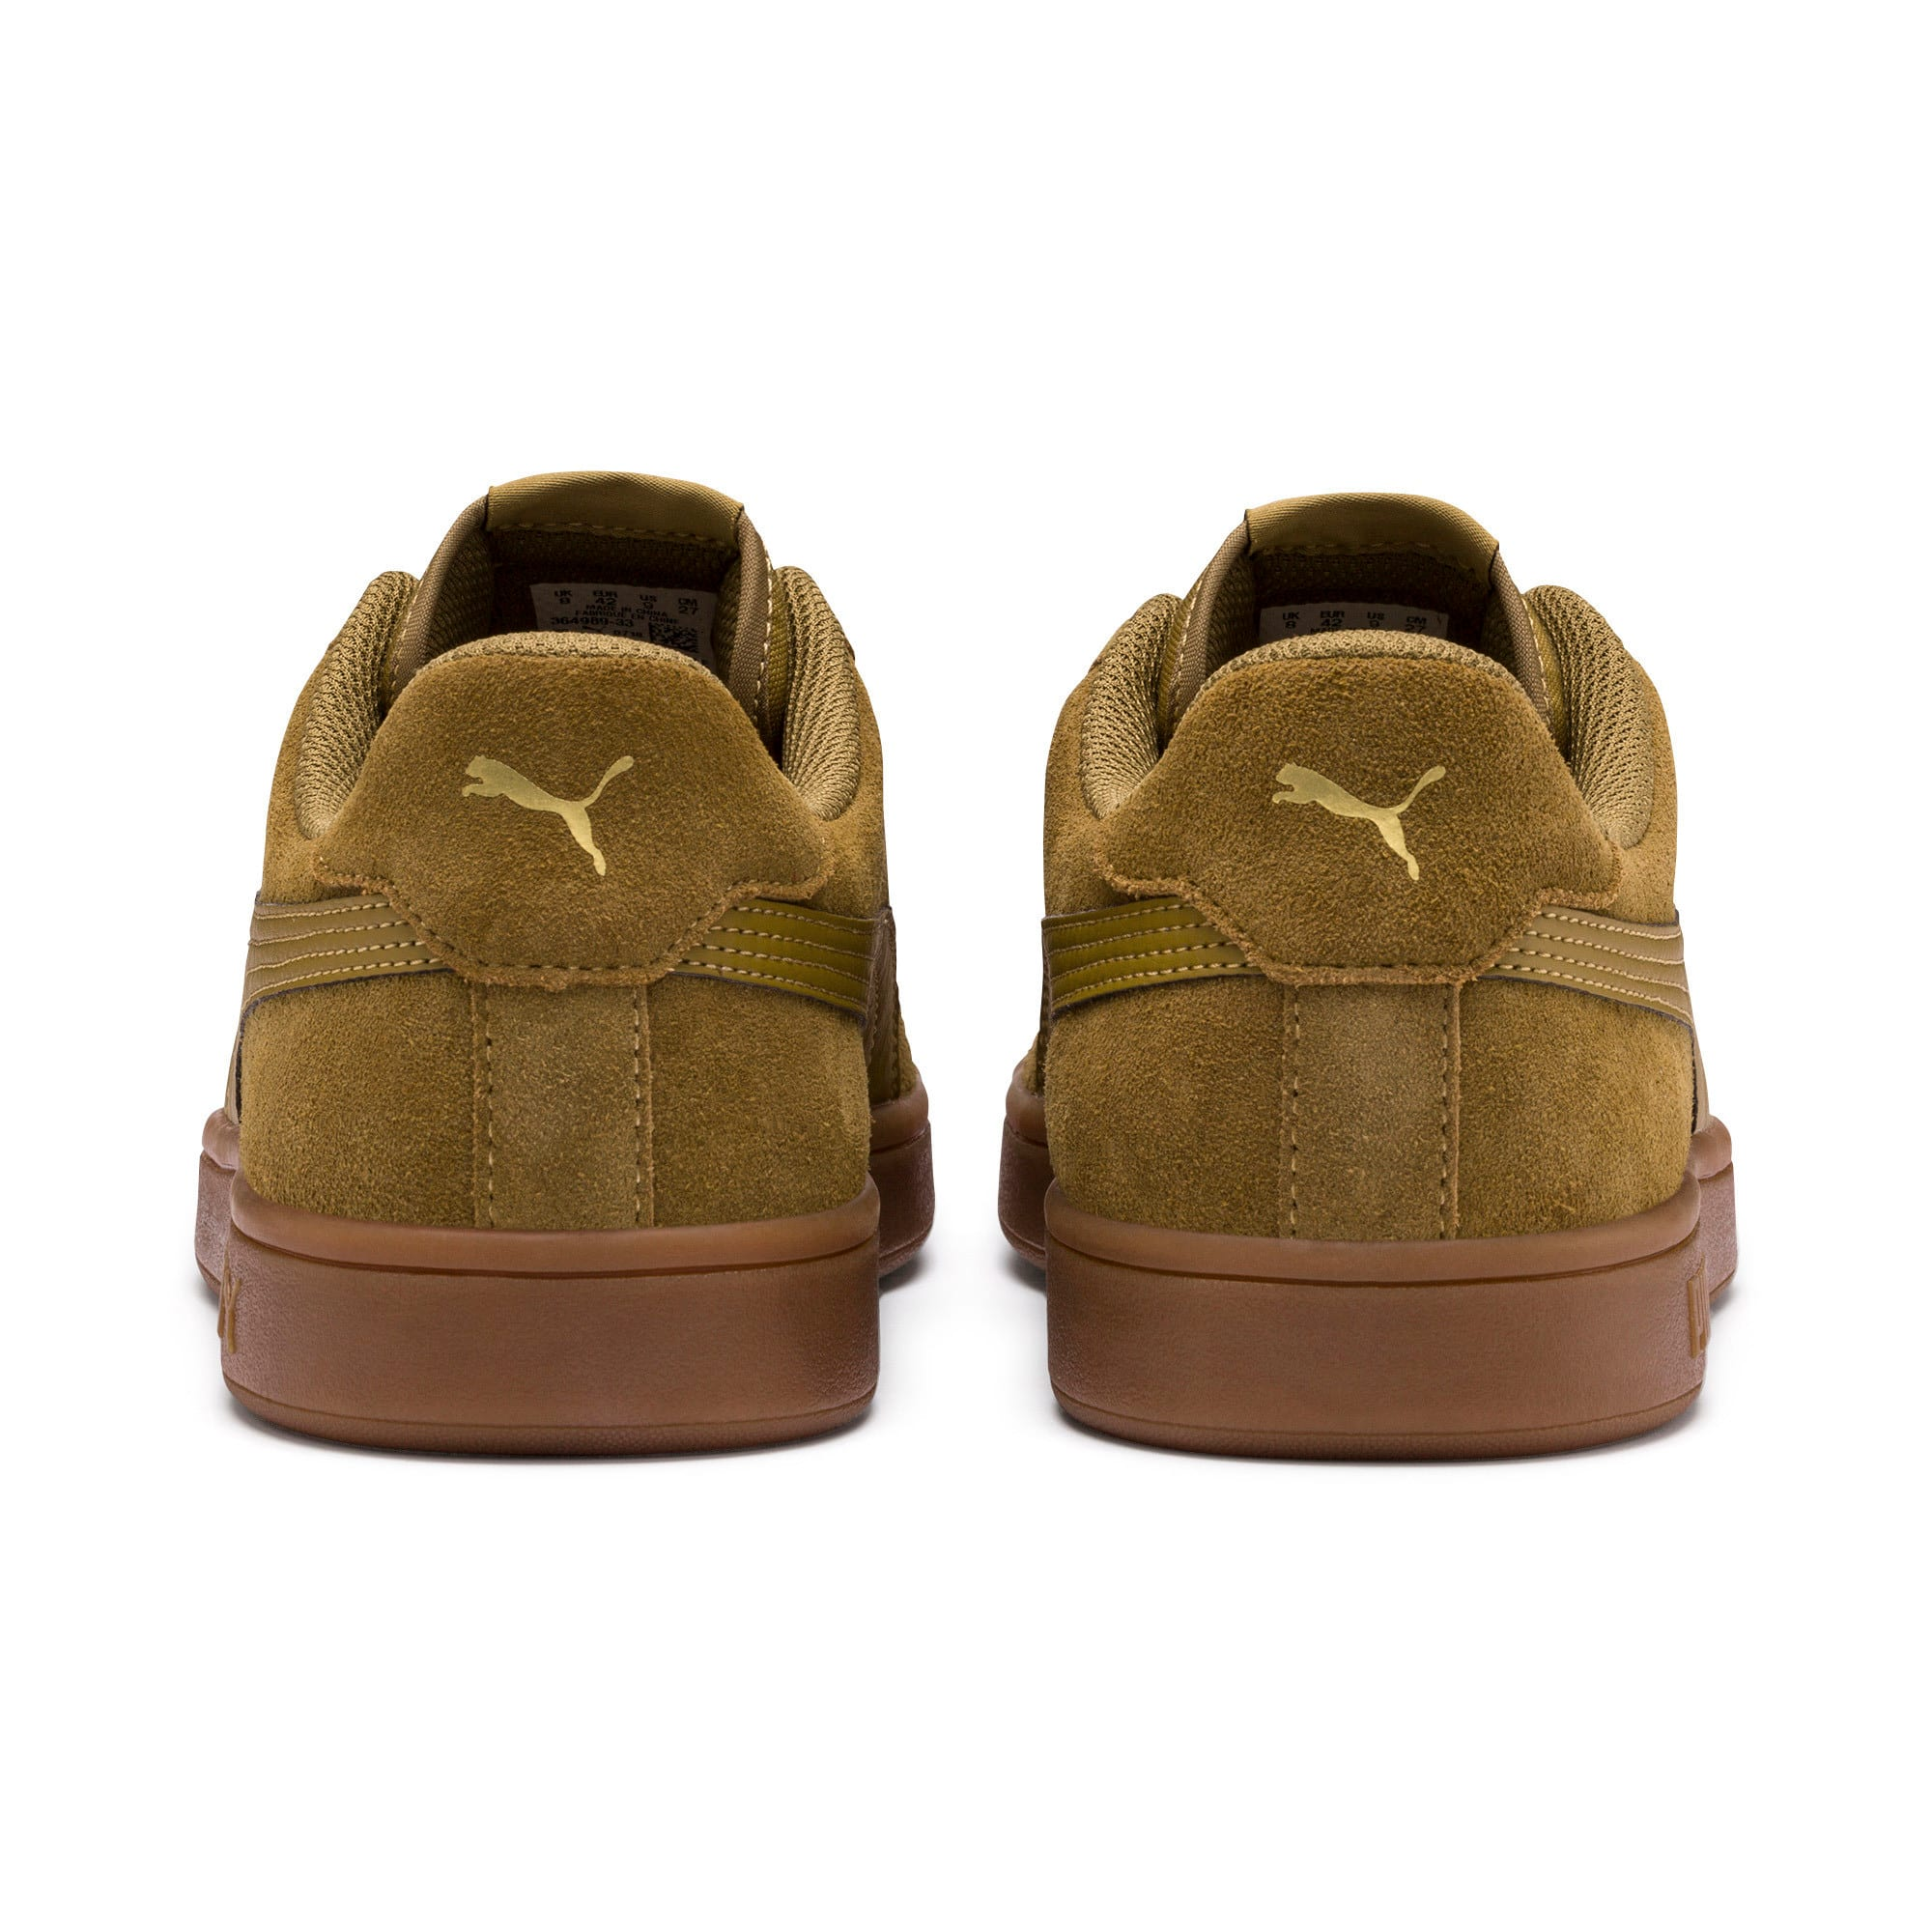 Thumbnail 4 of PUMA Smash v2 Sneakers, Moss Green-Team Gold-Gum, medium